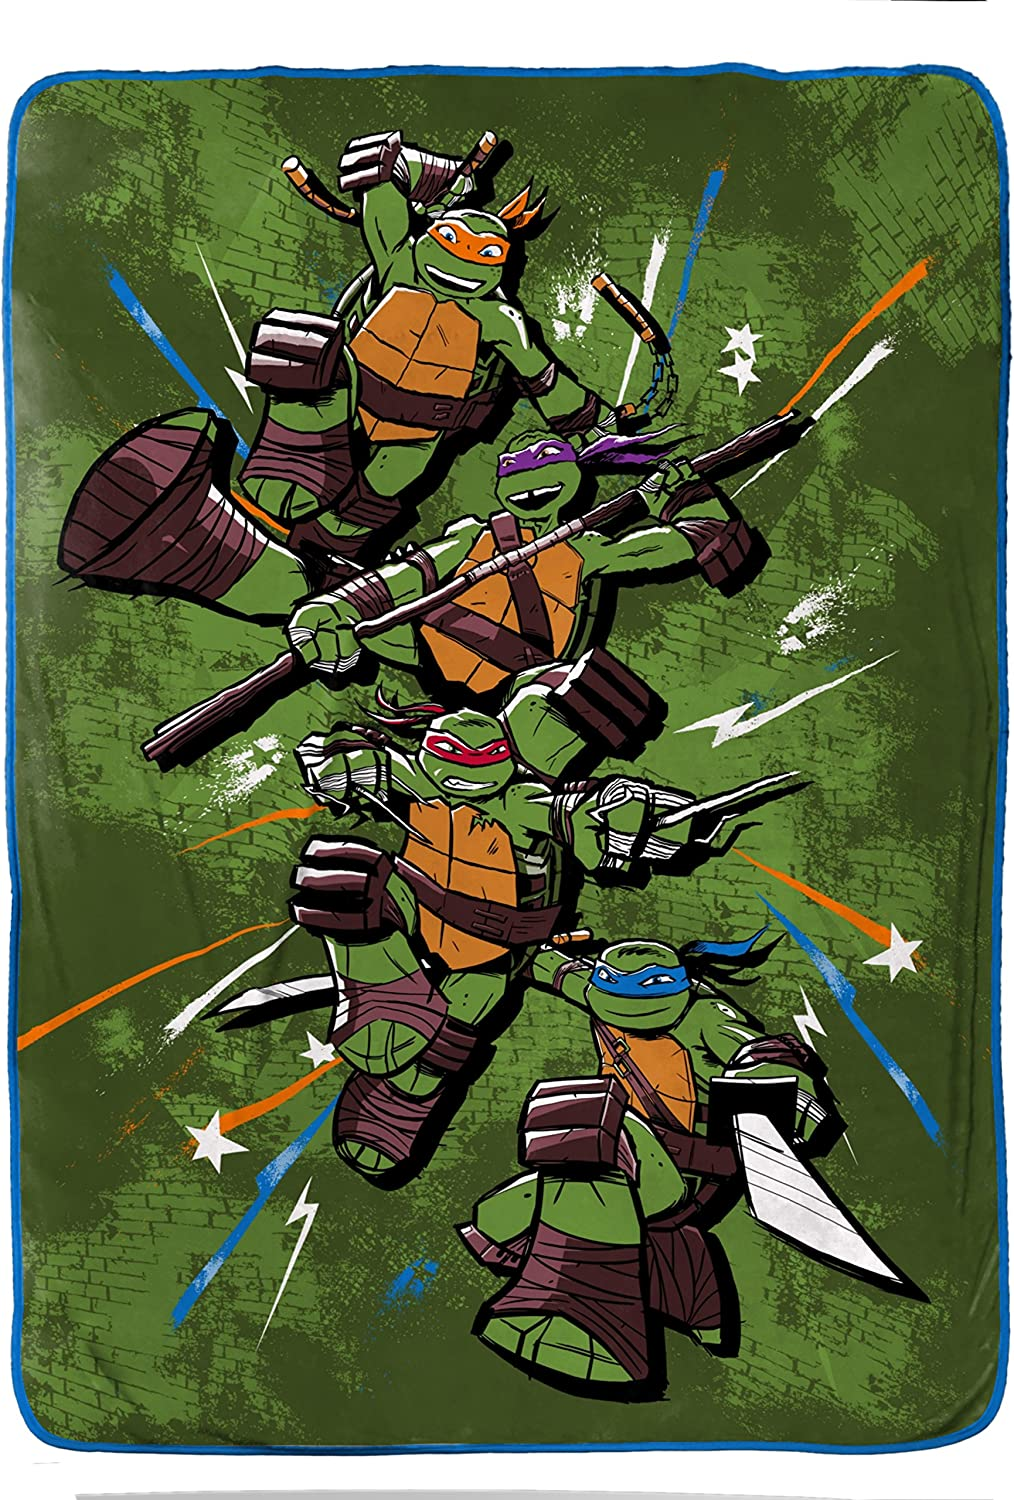 Jay Franco Teenage Mutant Ninja Turtles Mean Plush Coral Fleece Blanket, TMNT Green